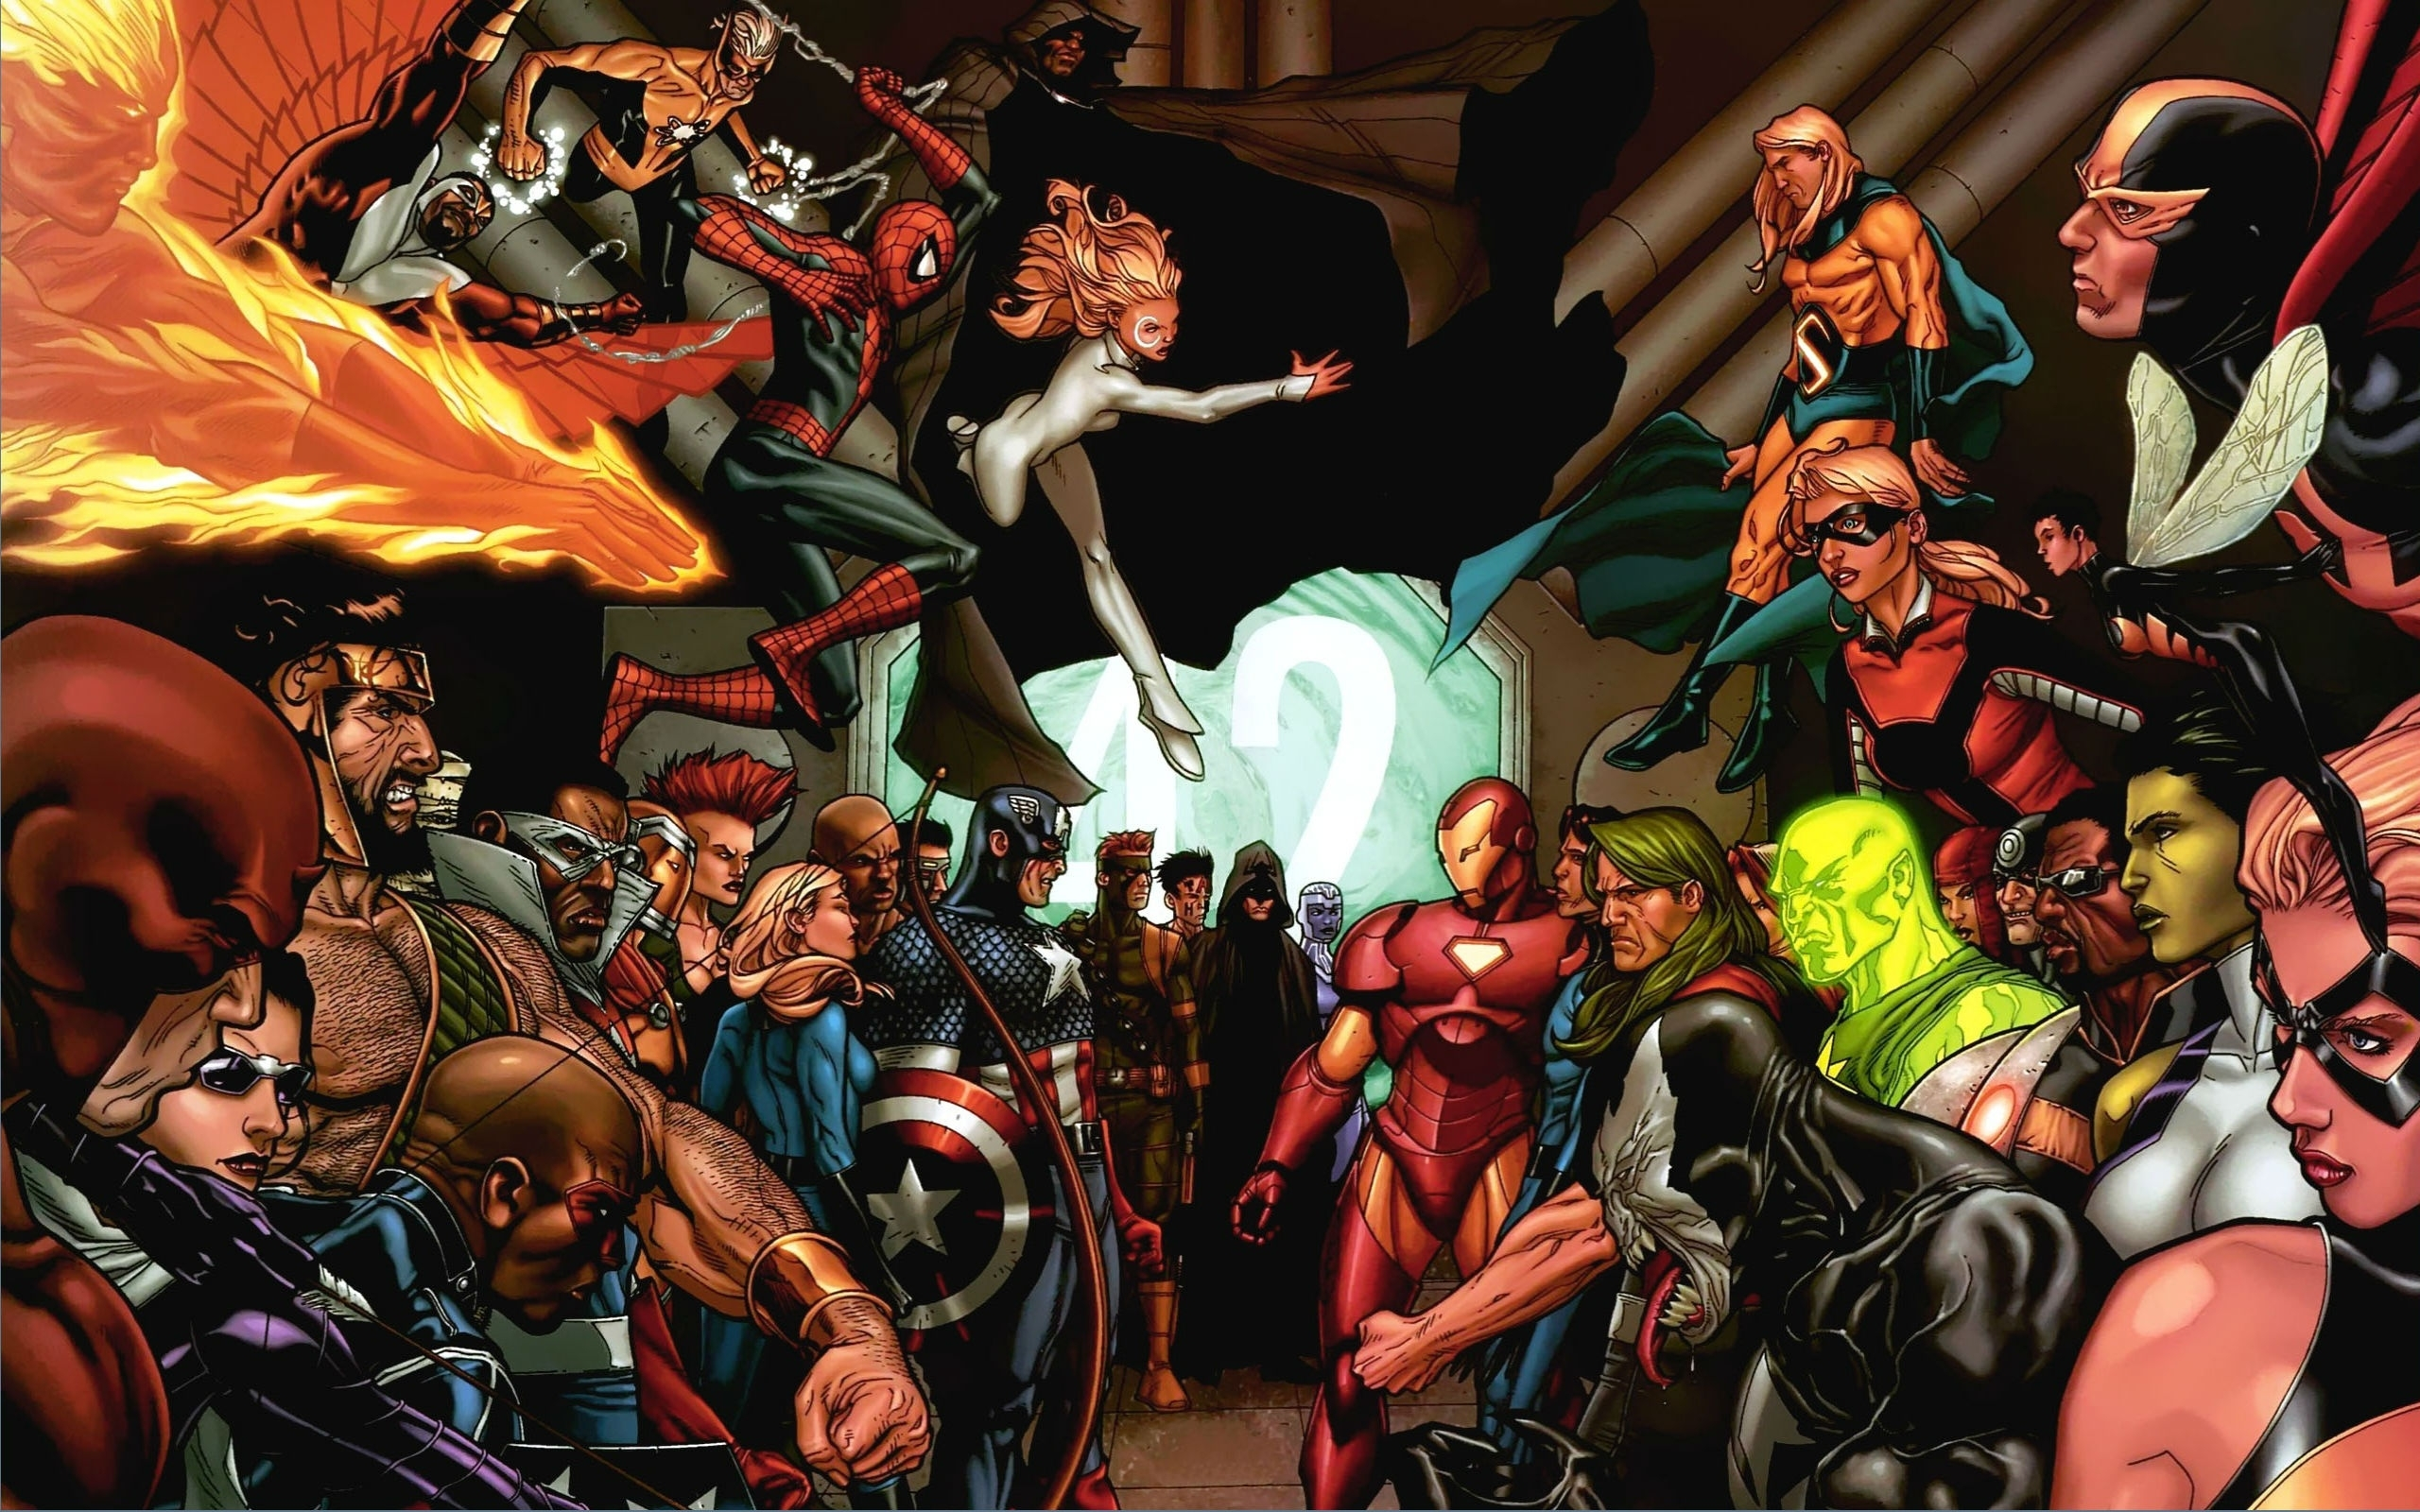 marvel civil war full hd wallpaper and background image | 2560x1600